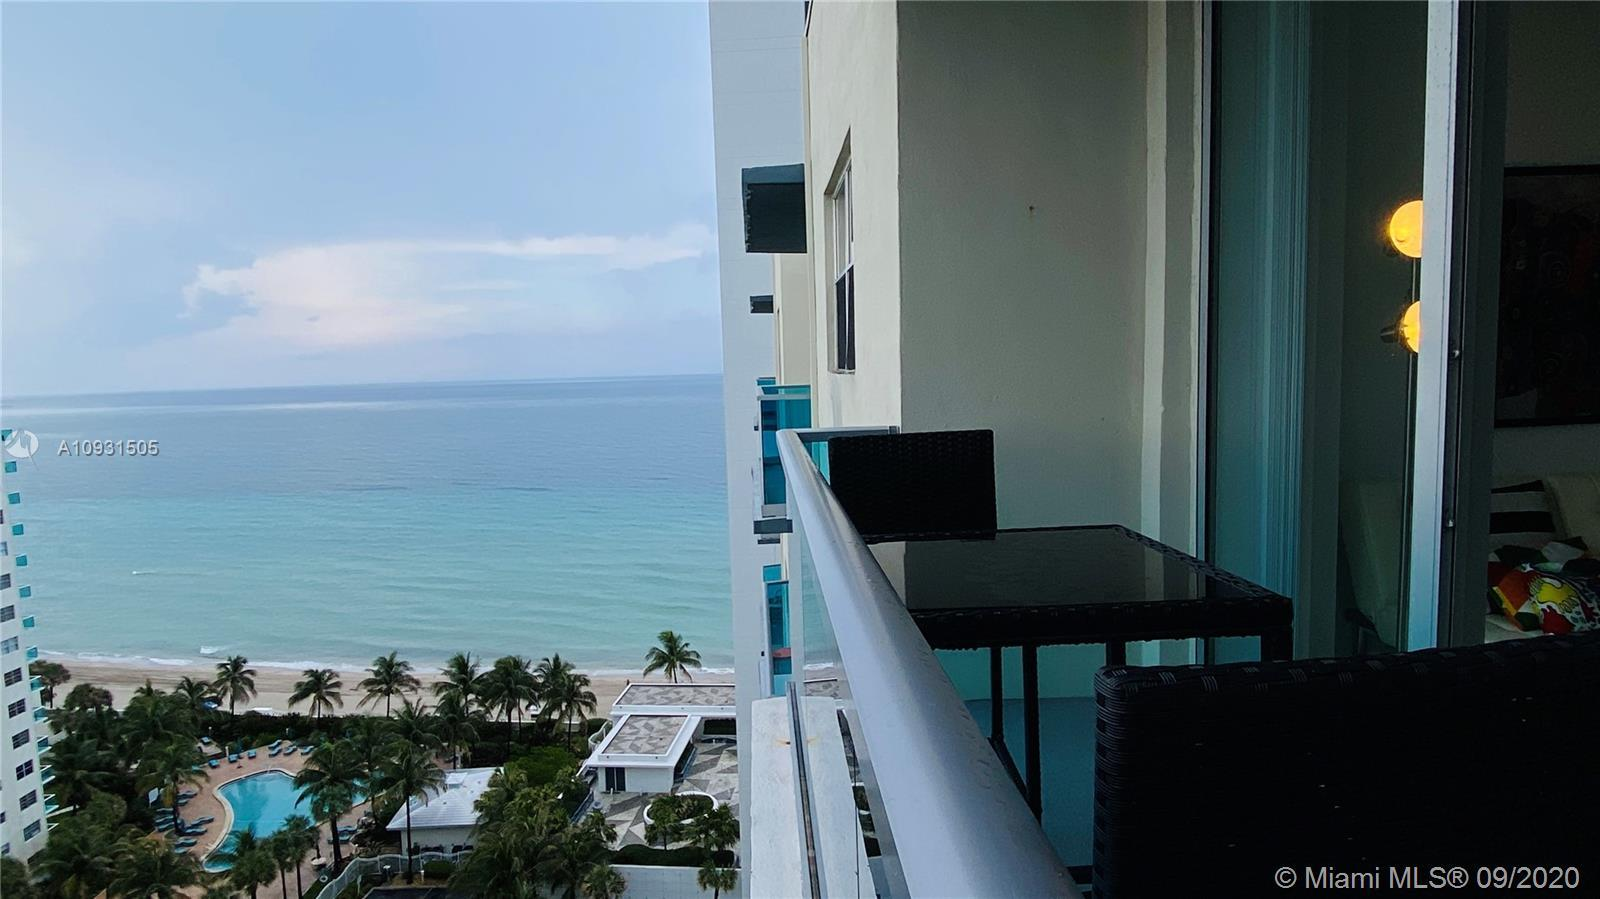 Investor!!! Good net income!!! No restriction for lease per day, Airbnb ok !! Spectacular penthouse